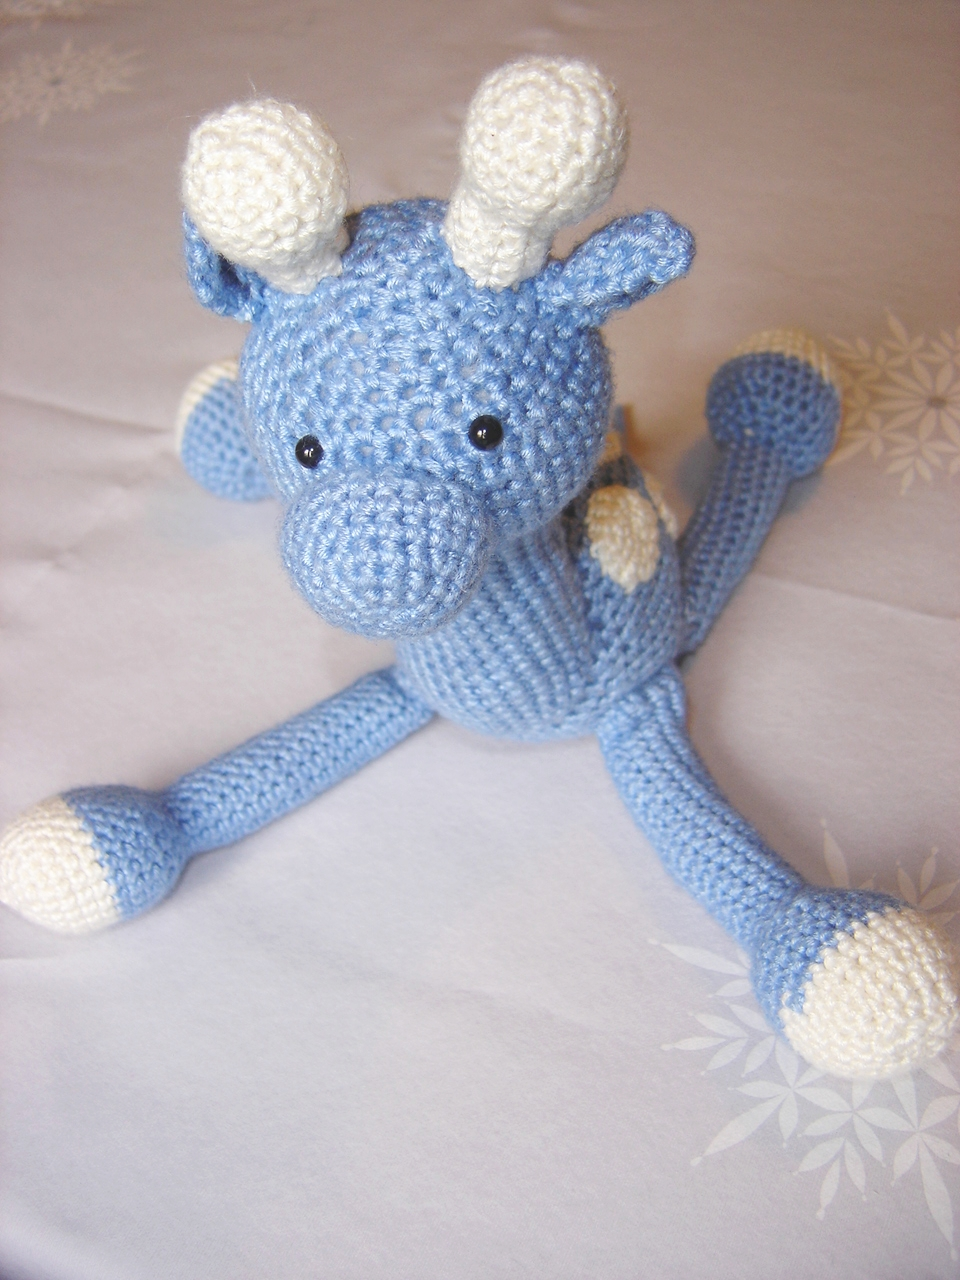 little black teapot: Horace the Crochet Giraffe